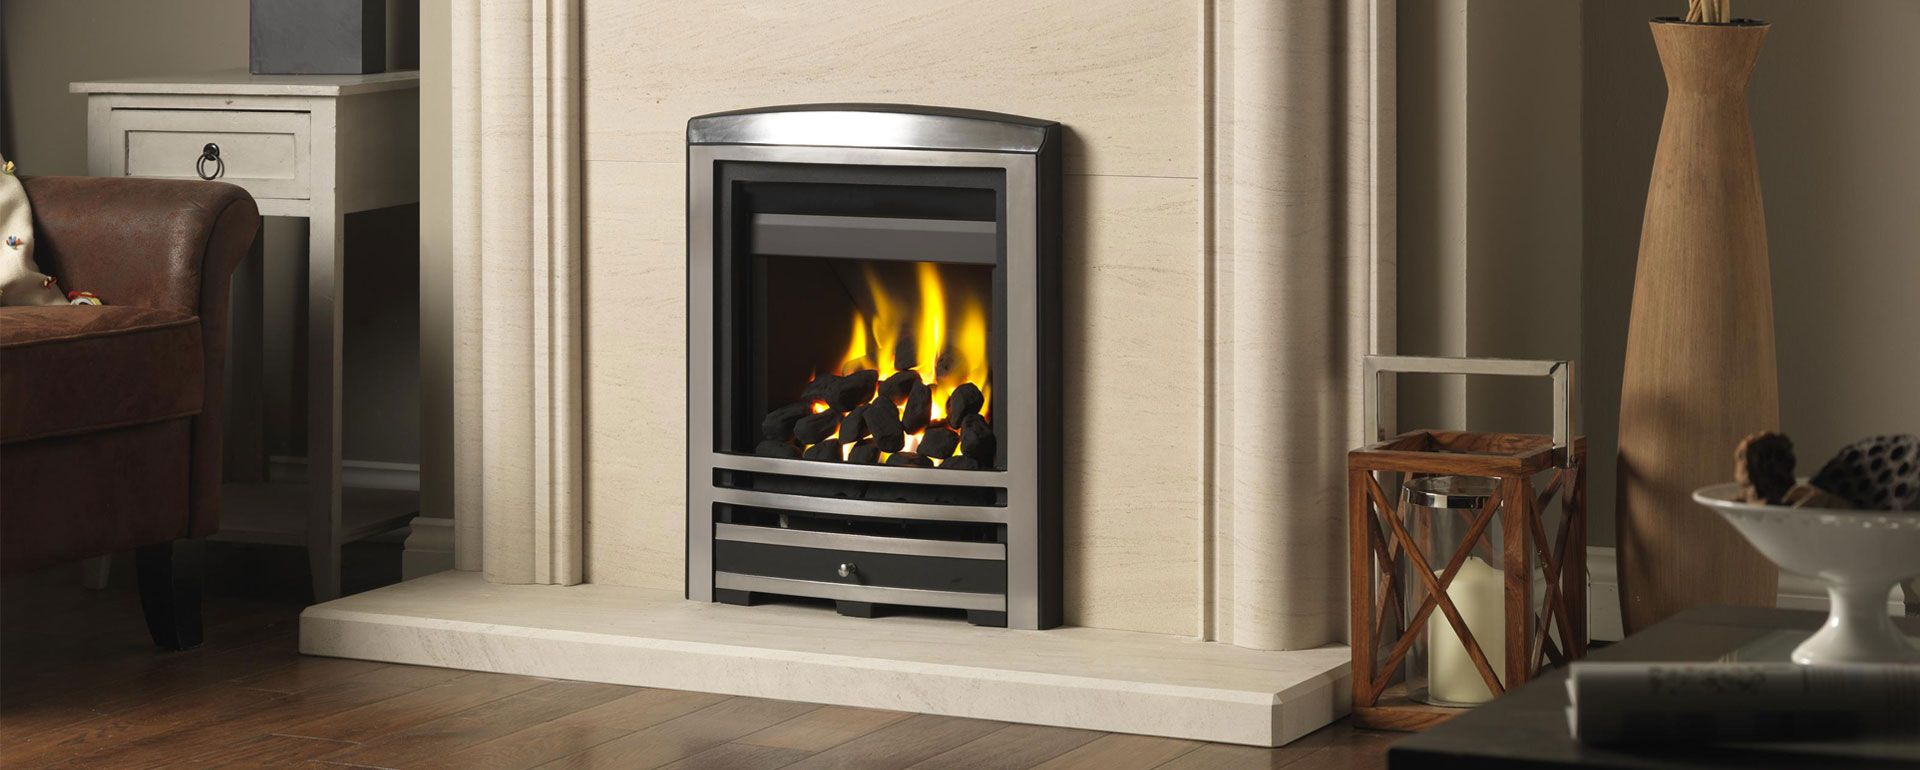 Fireplaces & Stoves in Stafford